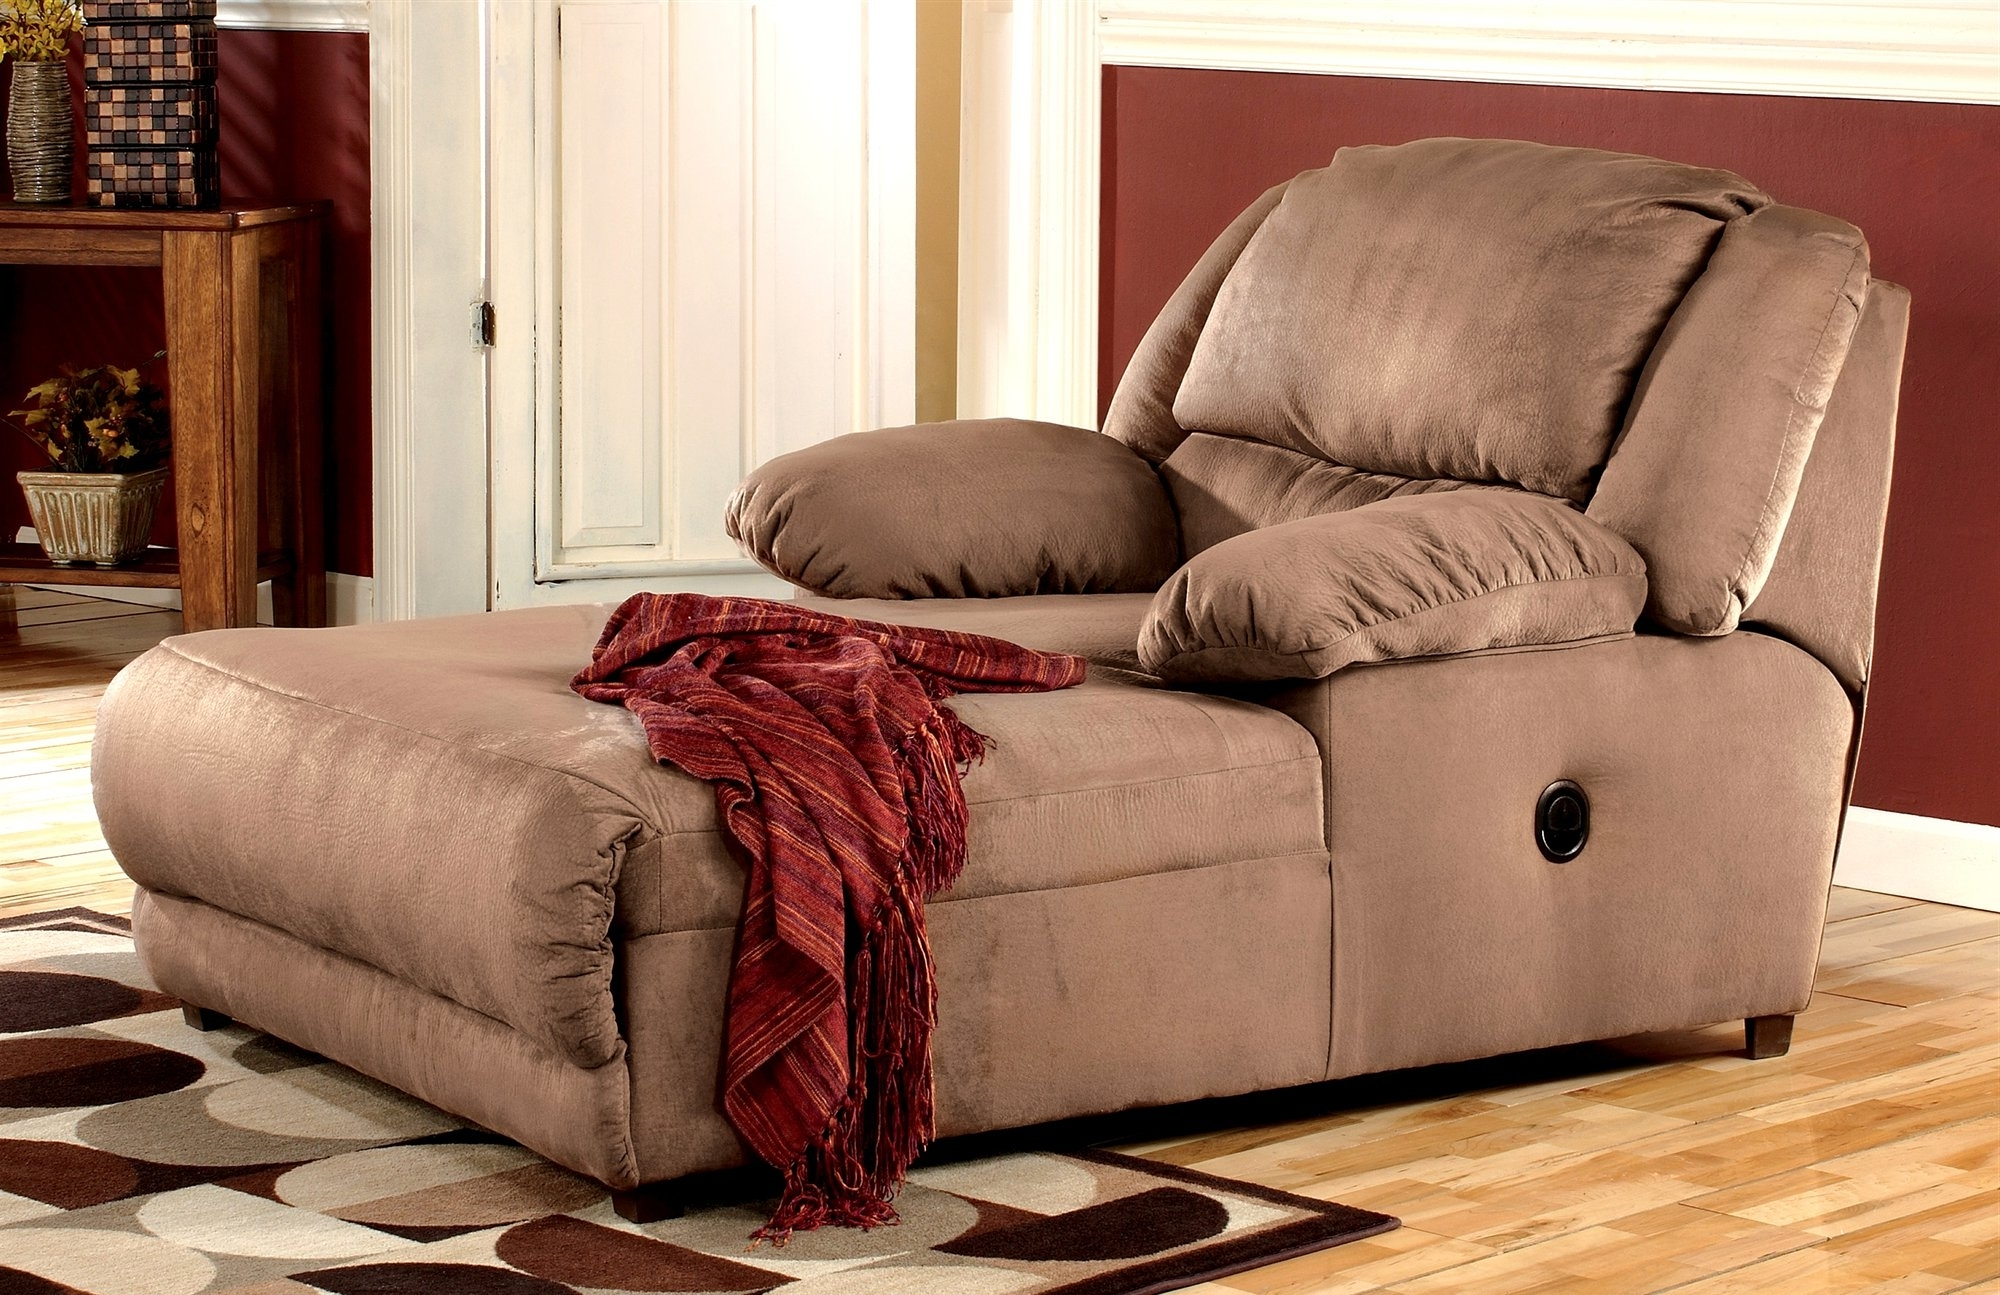 Preferred Oversized Chaise Lounge Indoor Chairs Intended For Convertible  Chair : Lounge Chairs Backyard Lounge Chairs